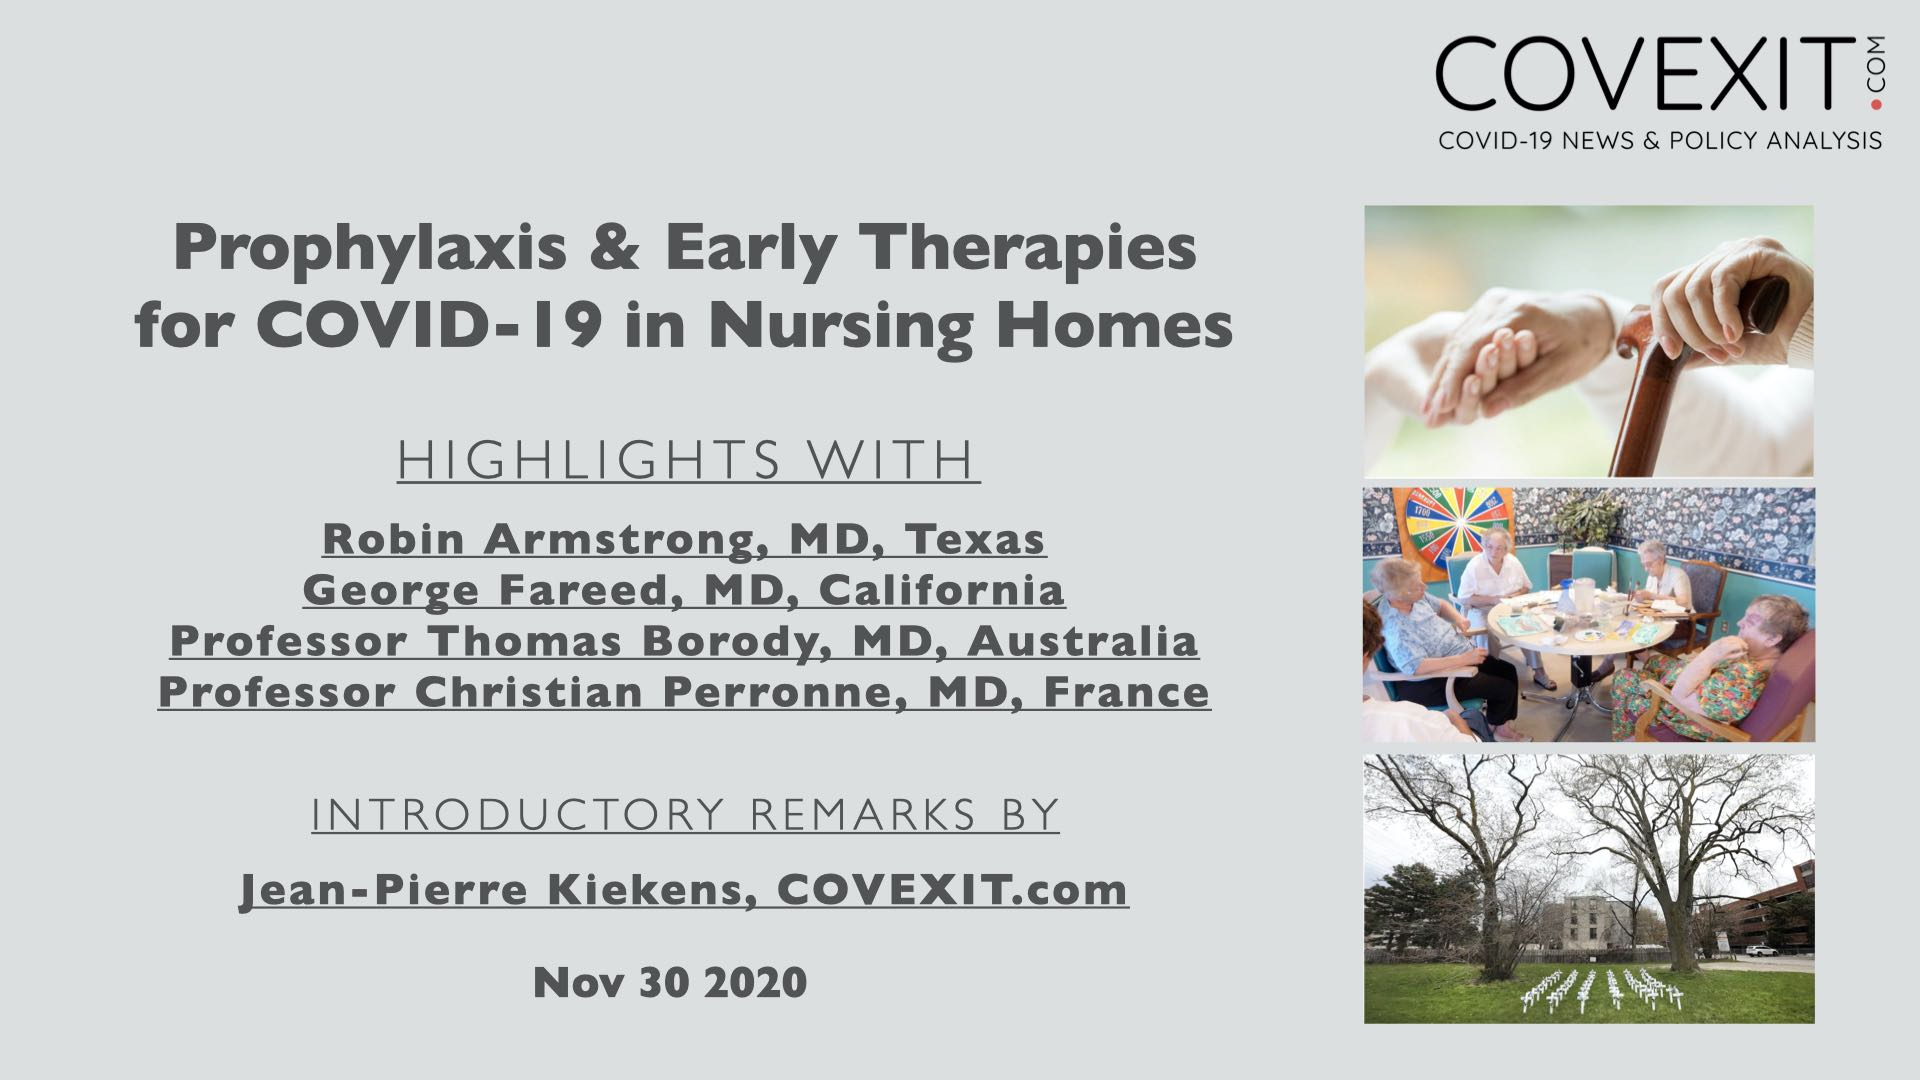 Prophylaxis and Treatment for COVID-19 in Nursing Homes: Video Highlights